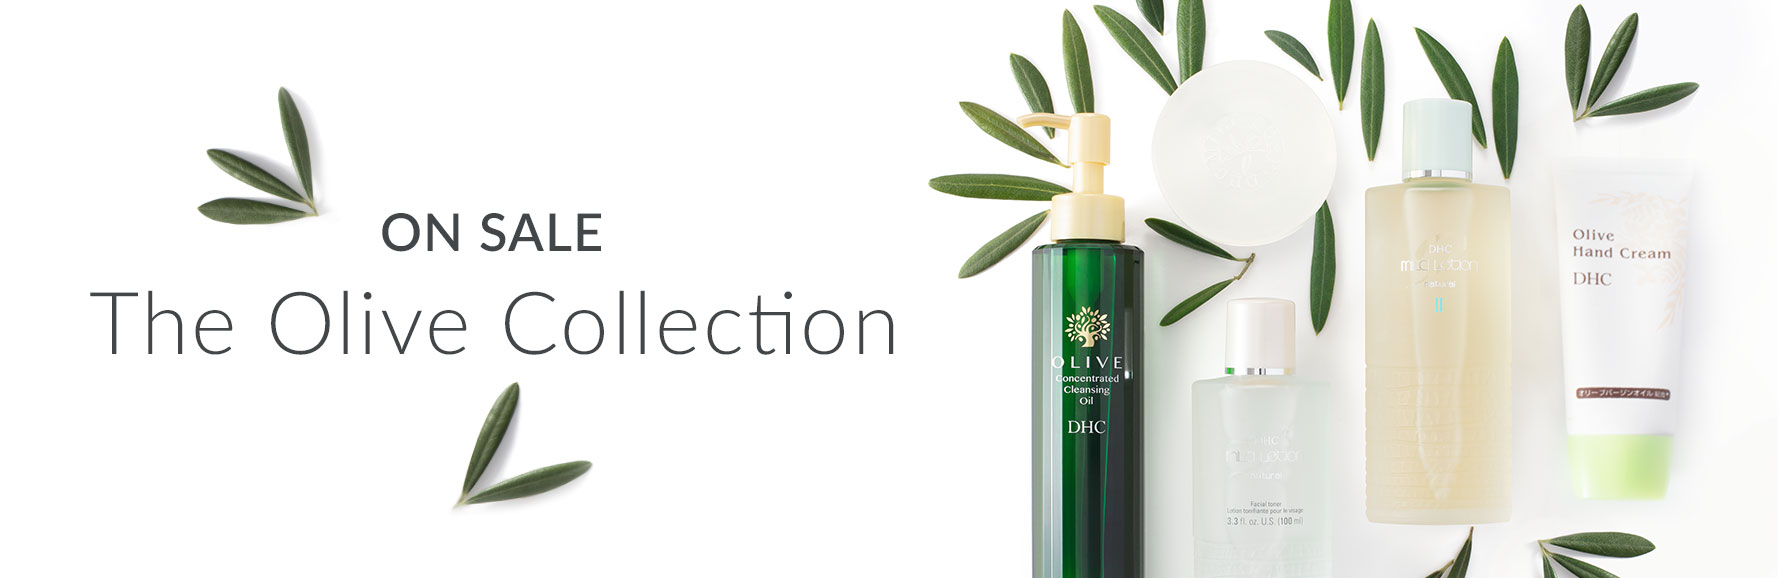 On Sale. The Olive Collection.